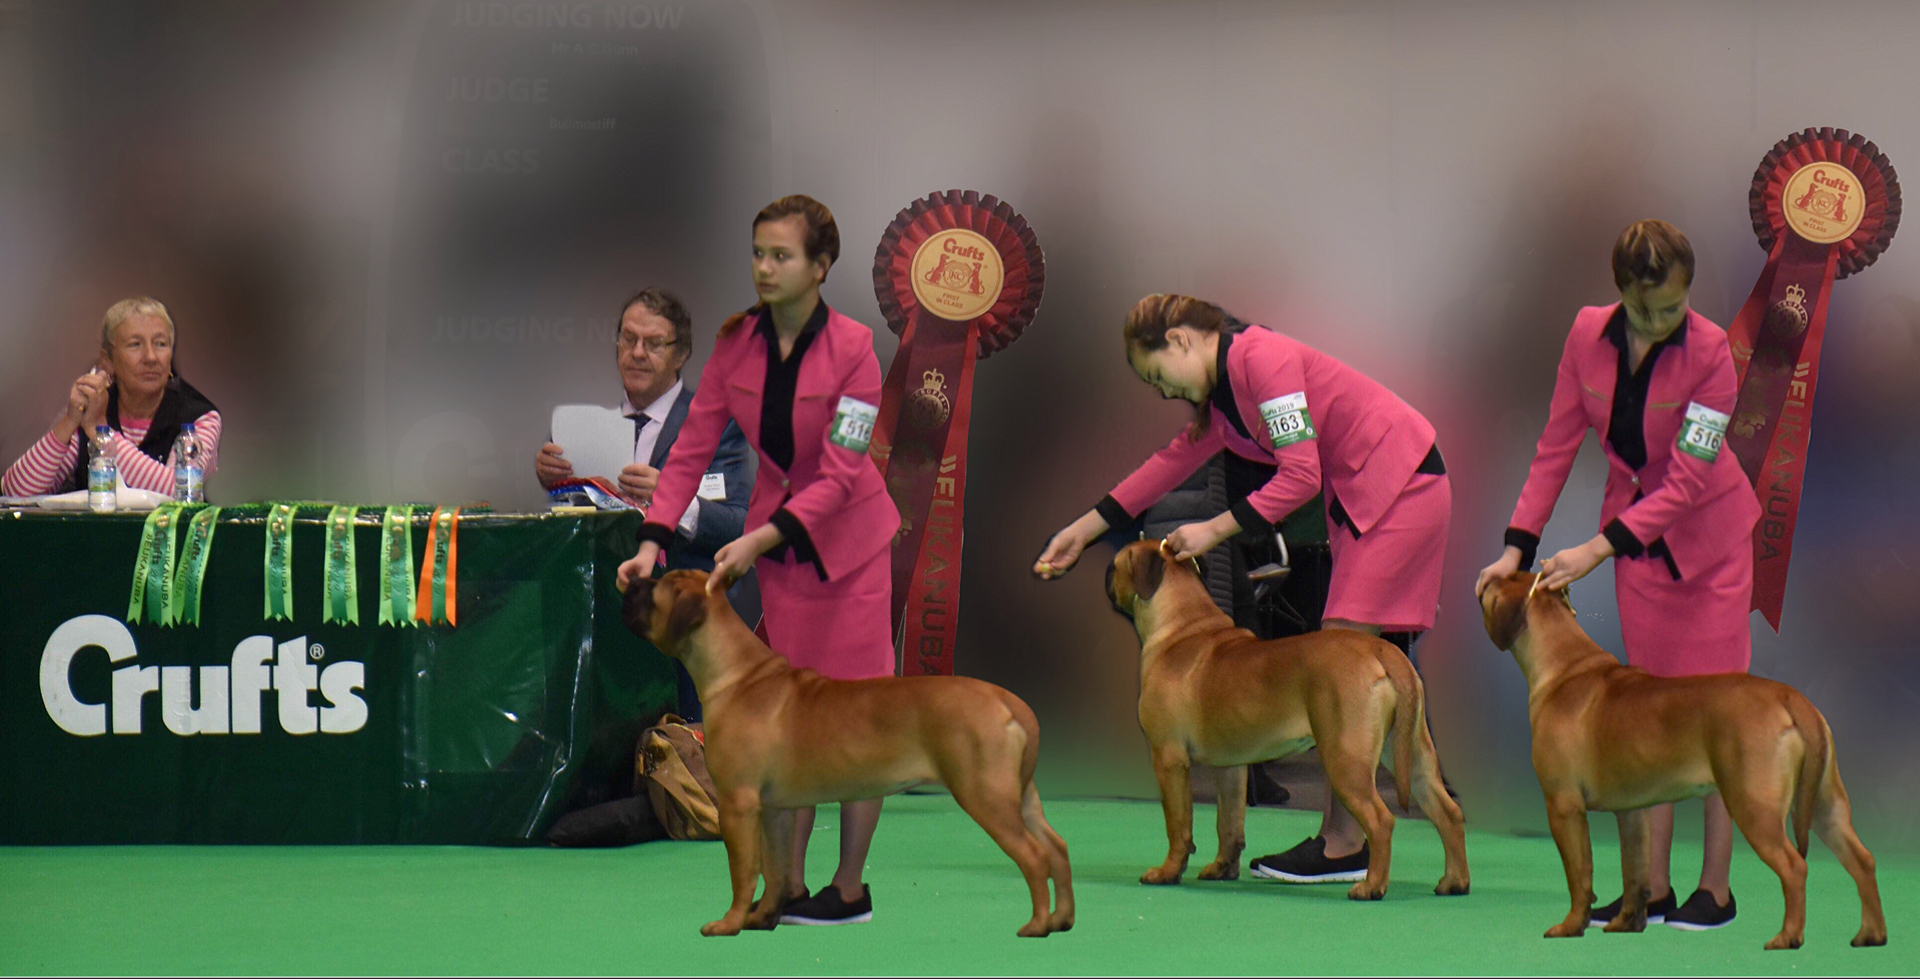 Valcobulls reasonable doubt best female minor pup best female pup crufts 2019